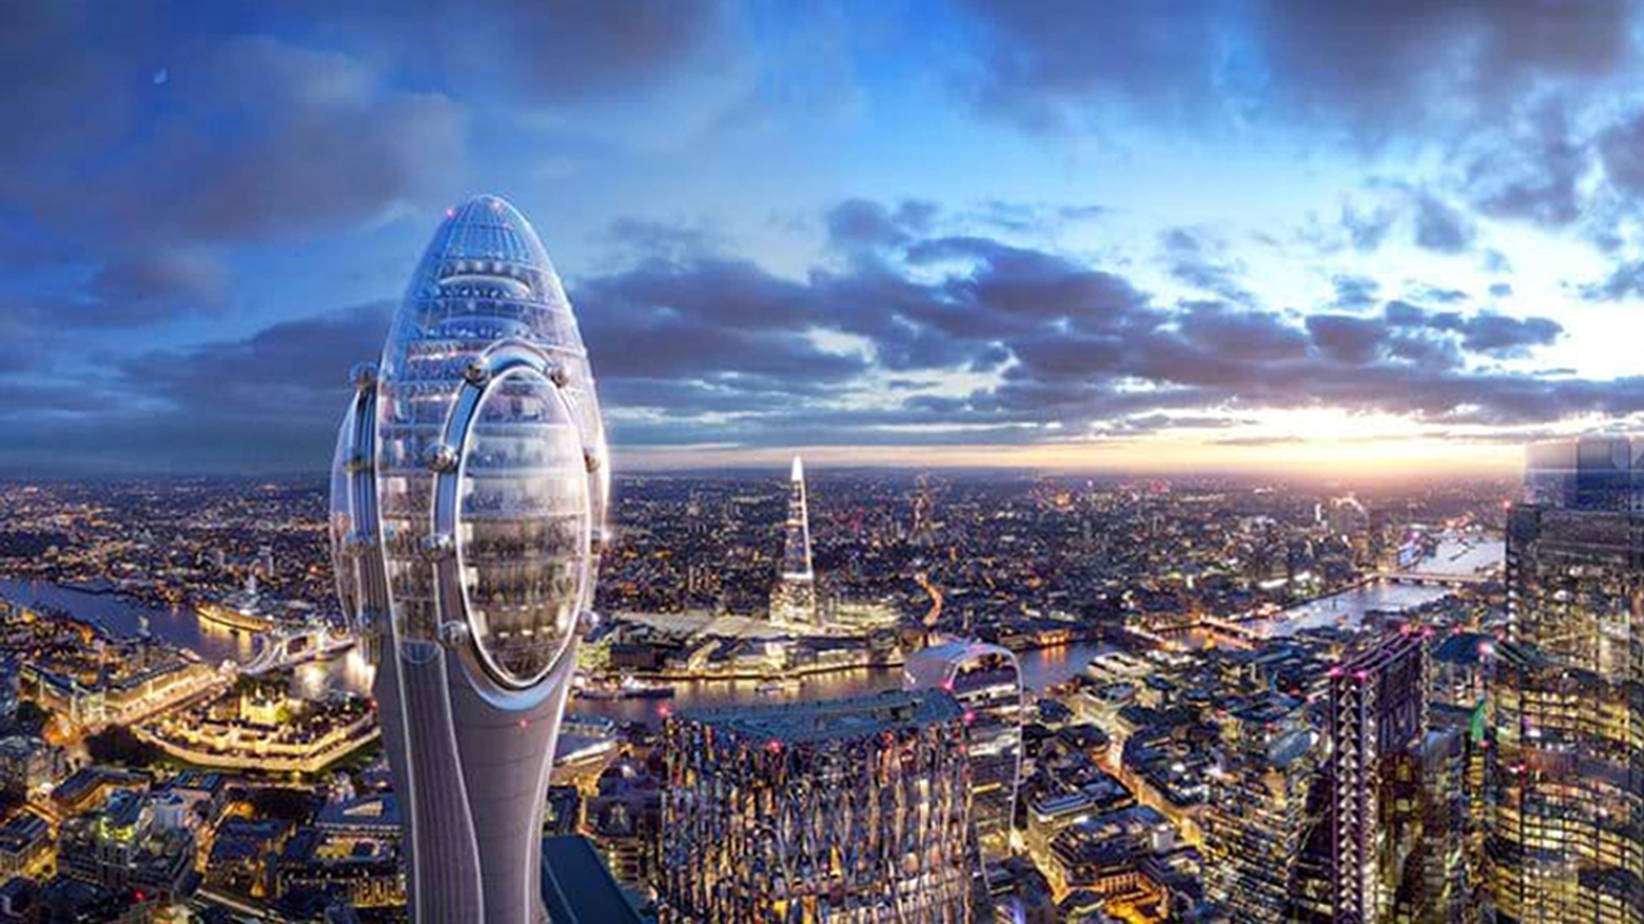 Plans To Build 'Tulip' Tower Scrapped